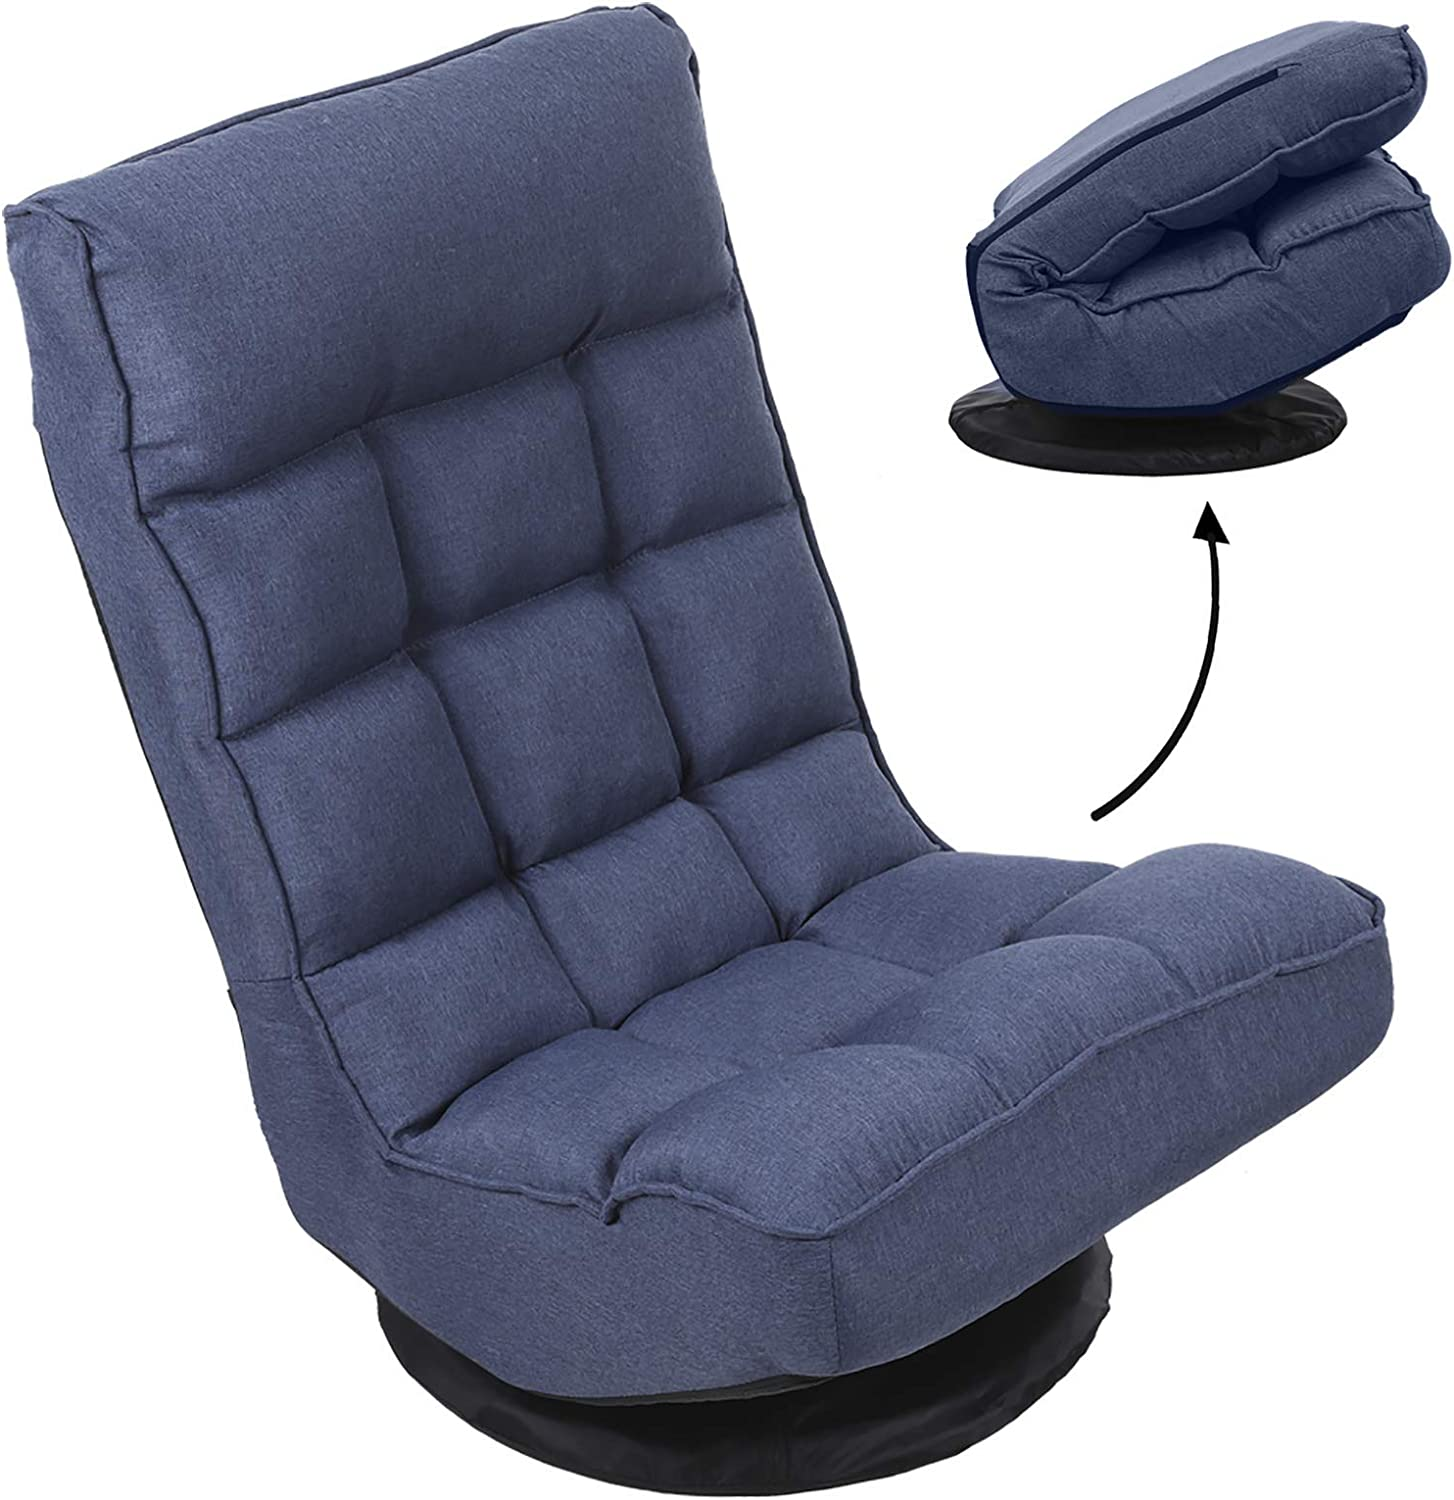 FLOGUOR 360-Degree Swivel Foldable Floor Gaming Chair with 6-Position Comfortable Lazy Leisure Sofa Lounge Chair for Reading Gaming TV Watching Factory Price (Blue) 6250DB